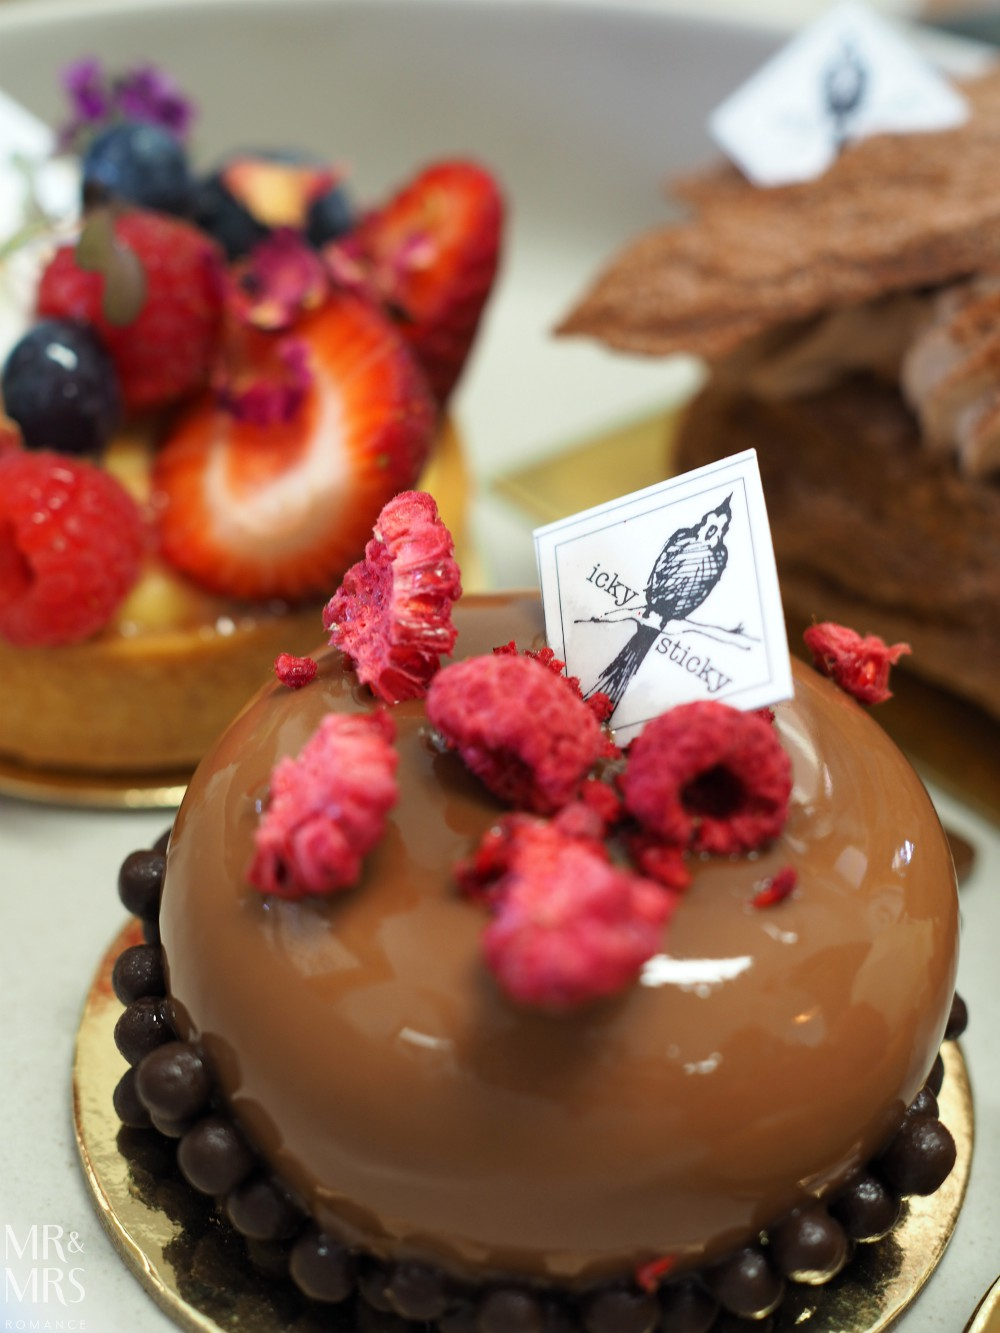 Weekend escape Maitland - Icky Sticky Patisserie